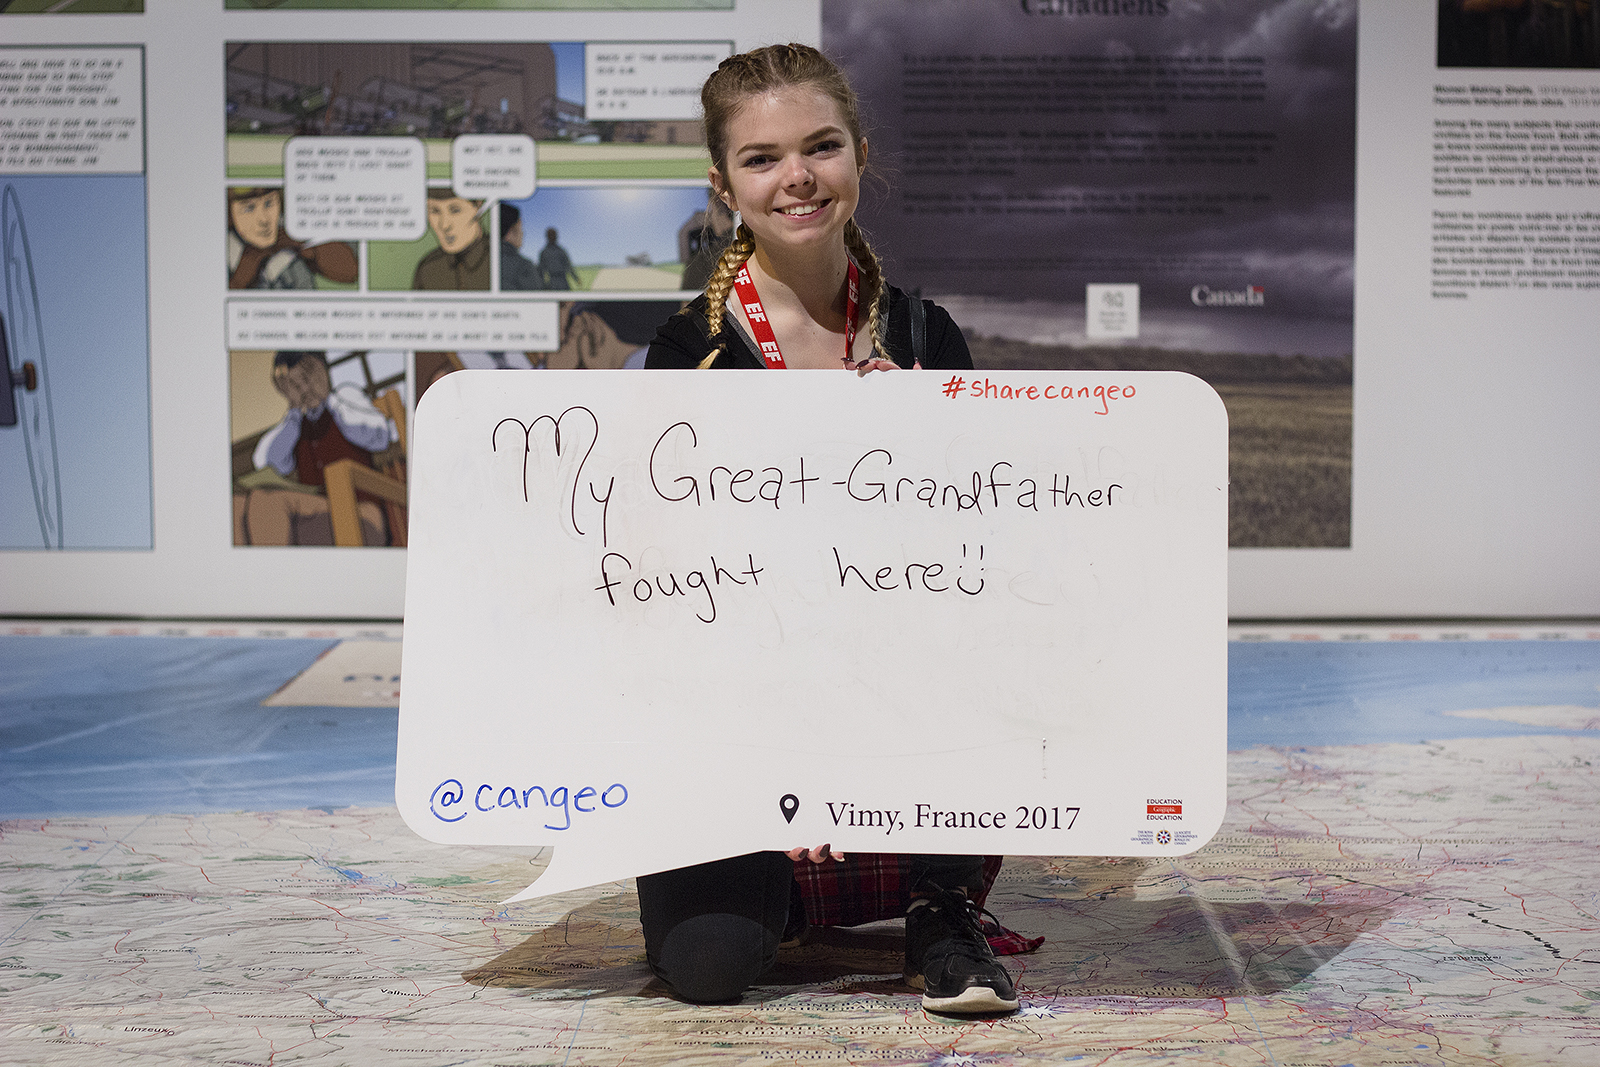 A student shares her perspective on Vimy Ridge